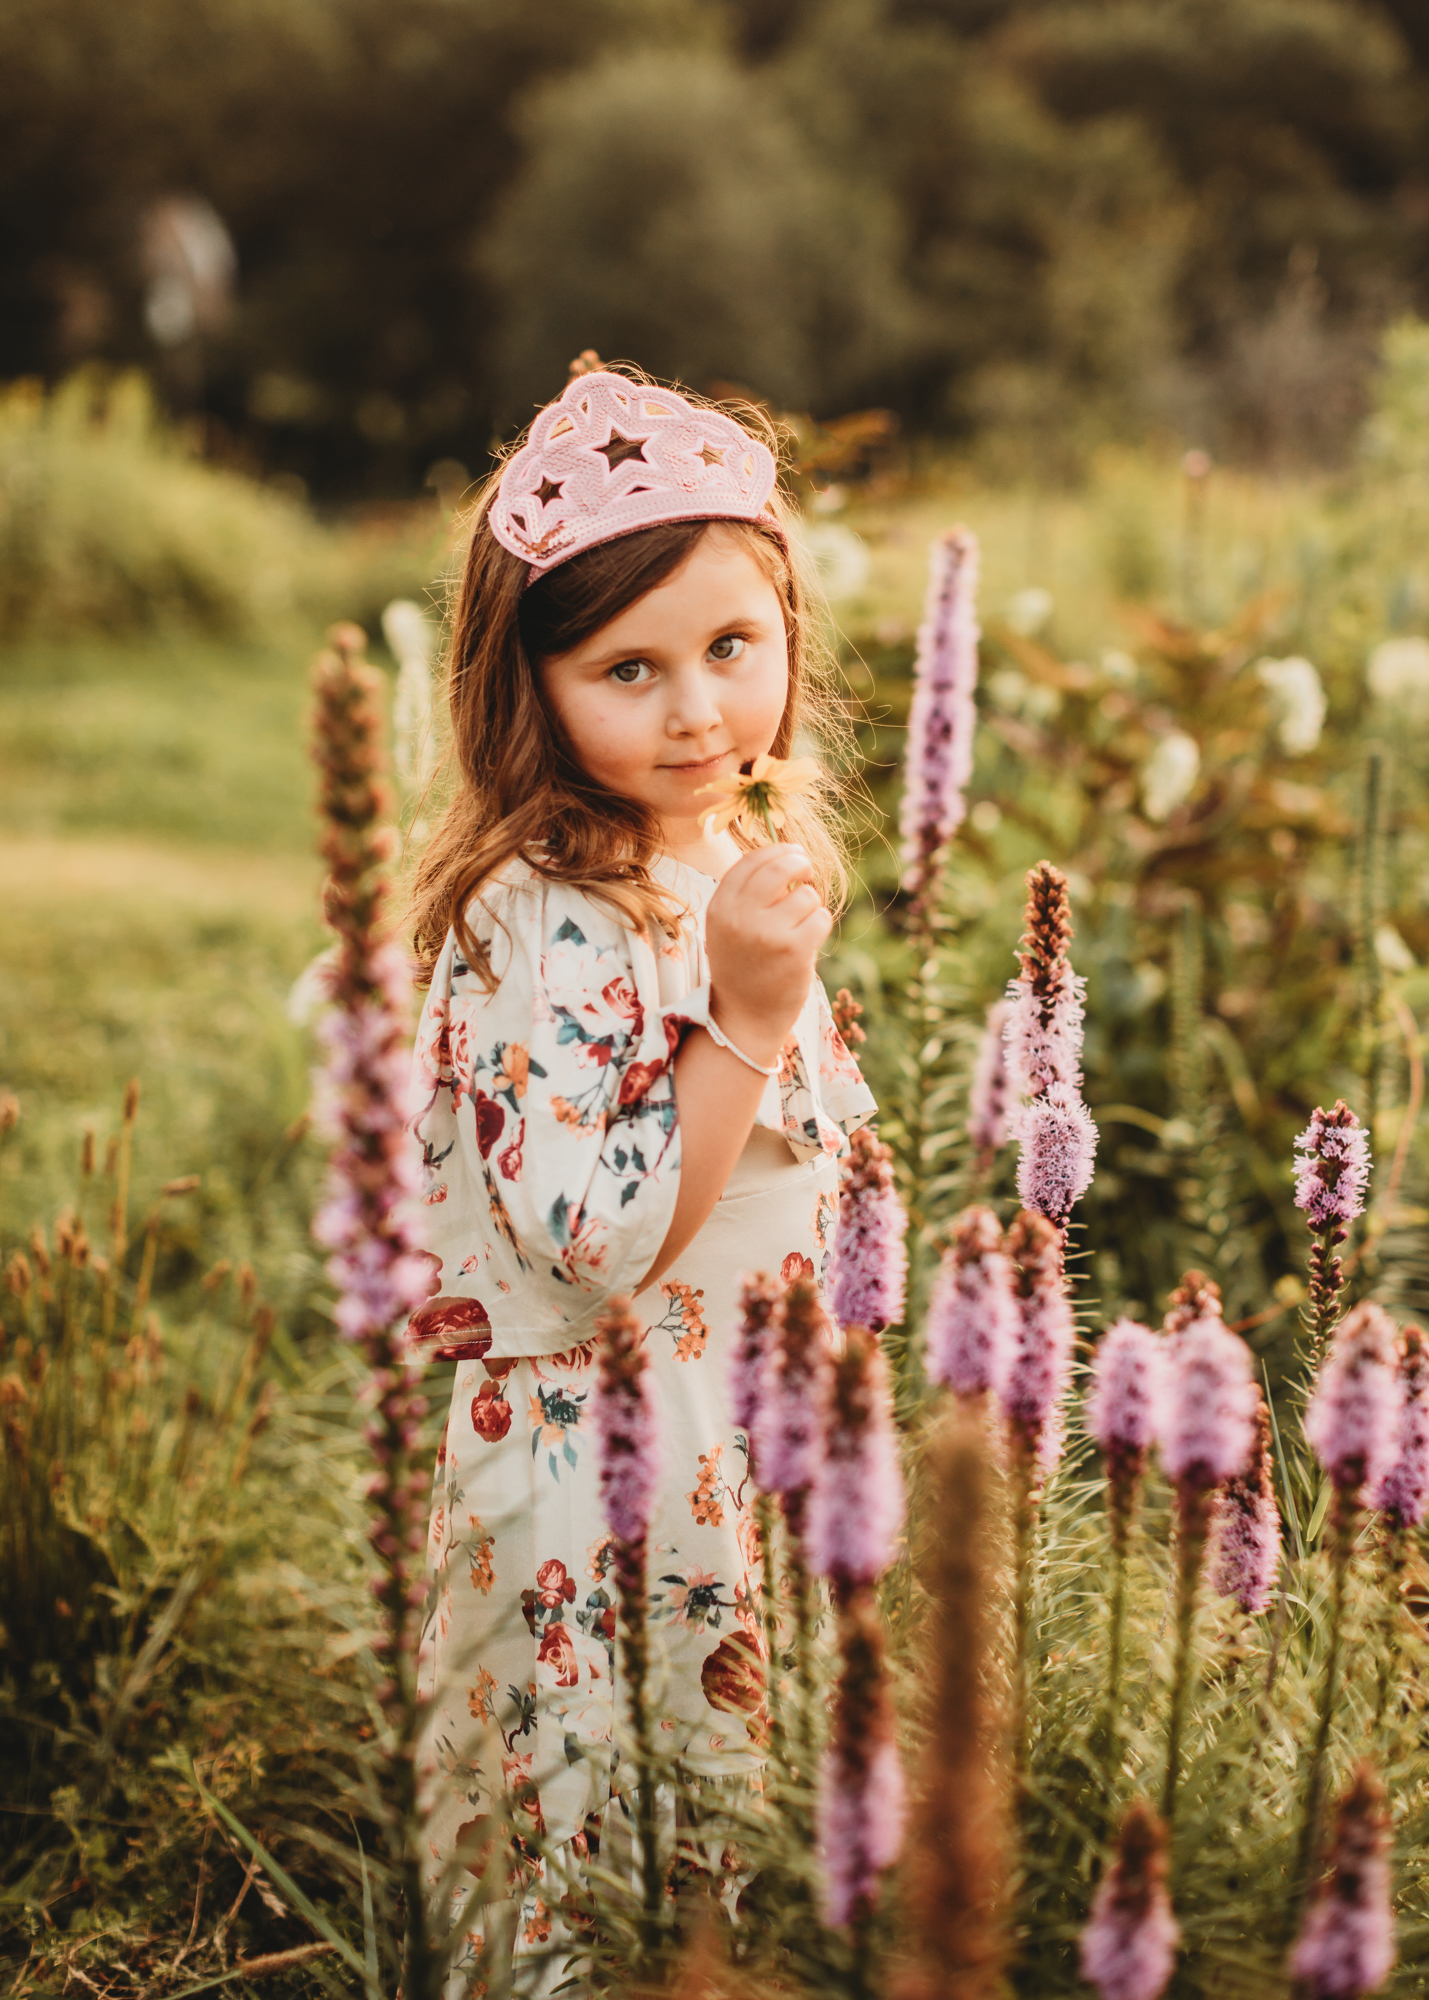 5-year-old Framingham, Massachusetts girl wearing her sequin crown while standing among the wildflowers (which are almost as tall as she is!). Photo by Greater Boston family photographer Joy LeDuc.